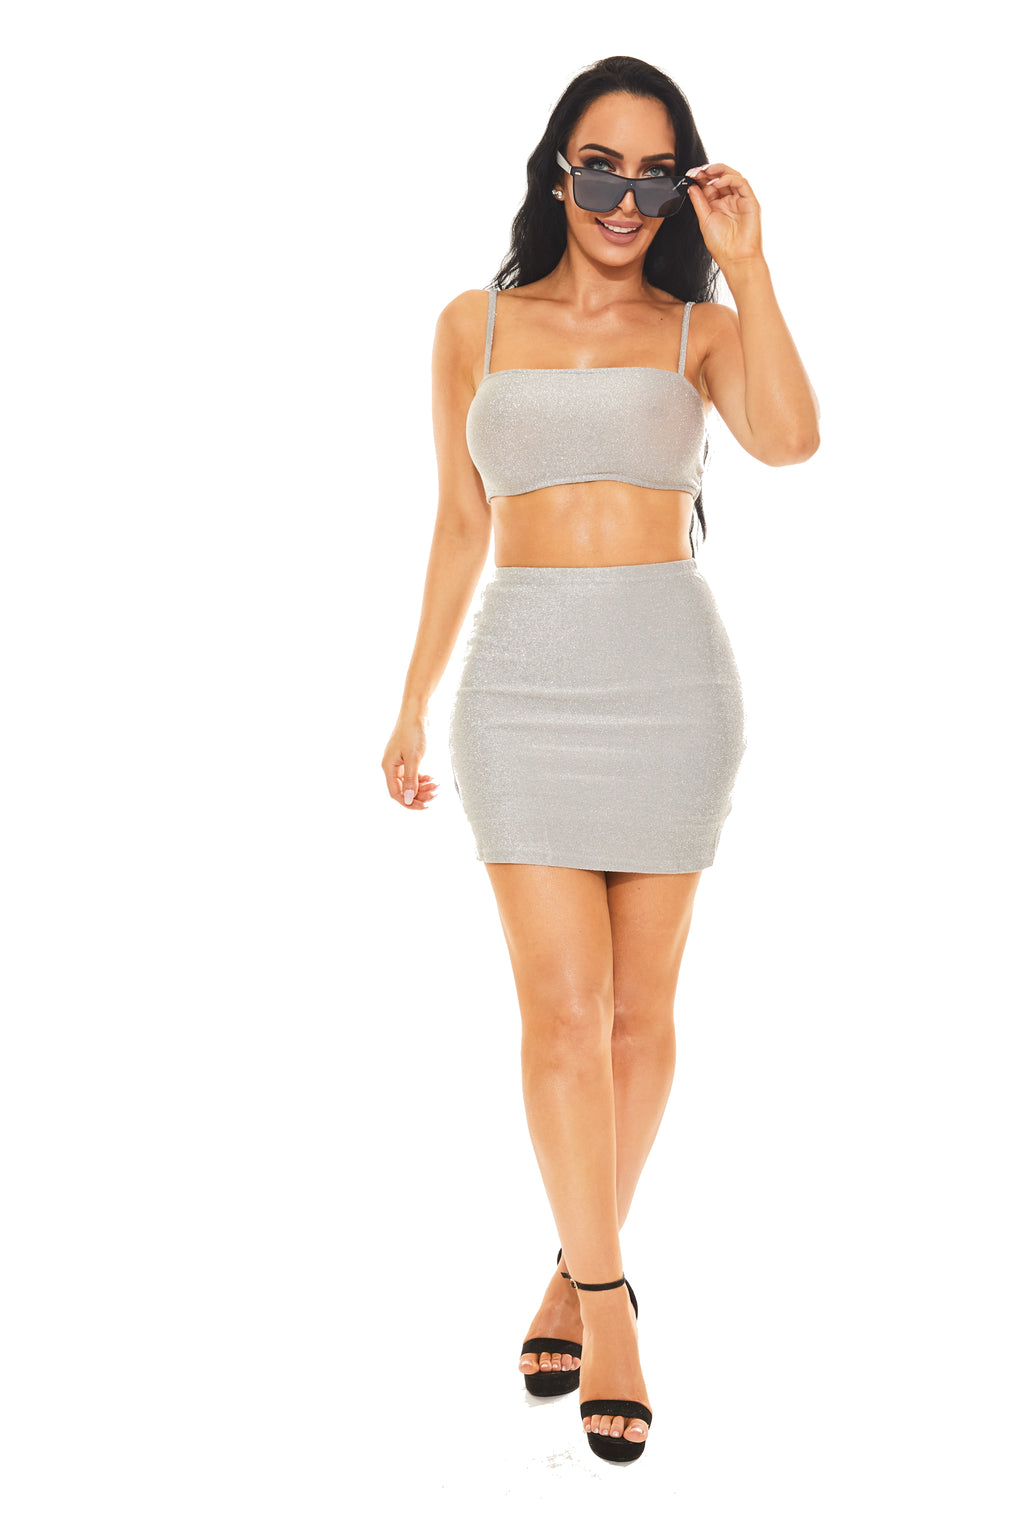 PLATINUM MEMBER - Skirt and Crop Top Set - www.prettyboutique.com